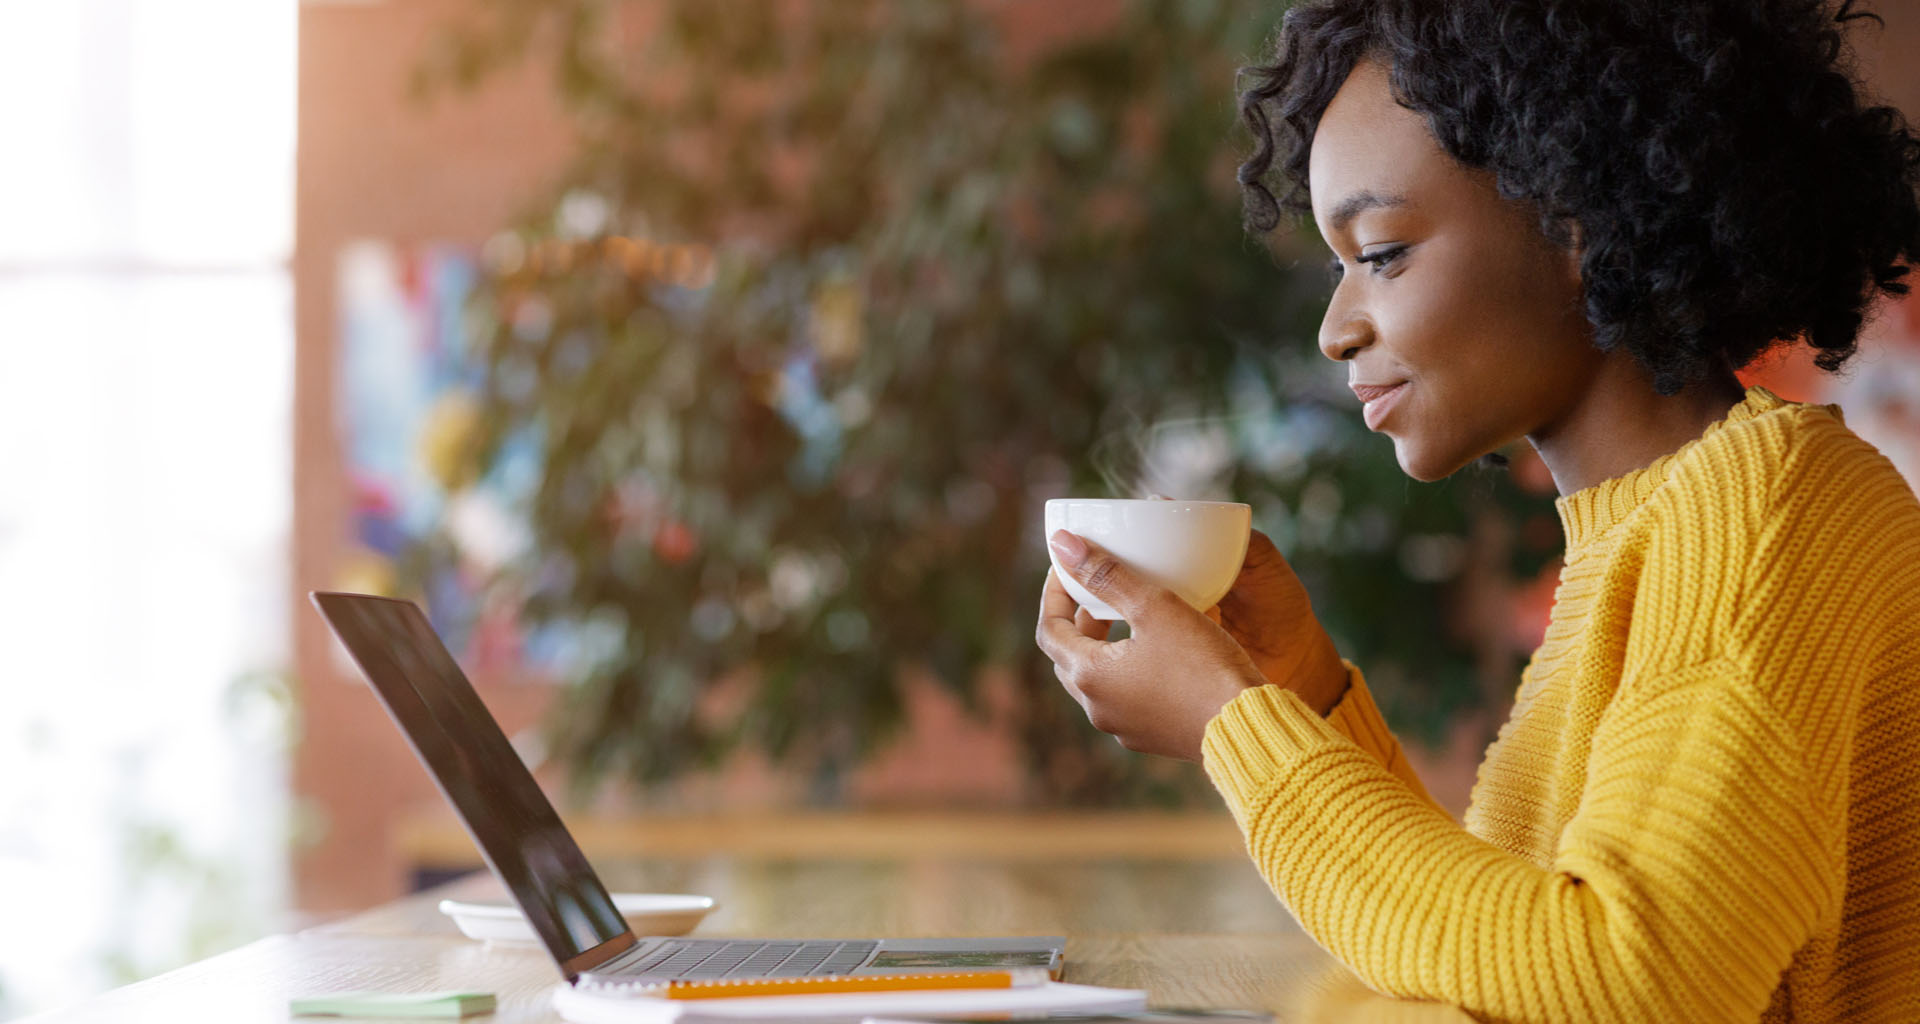 African American woman working from laptop while drinking from mug